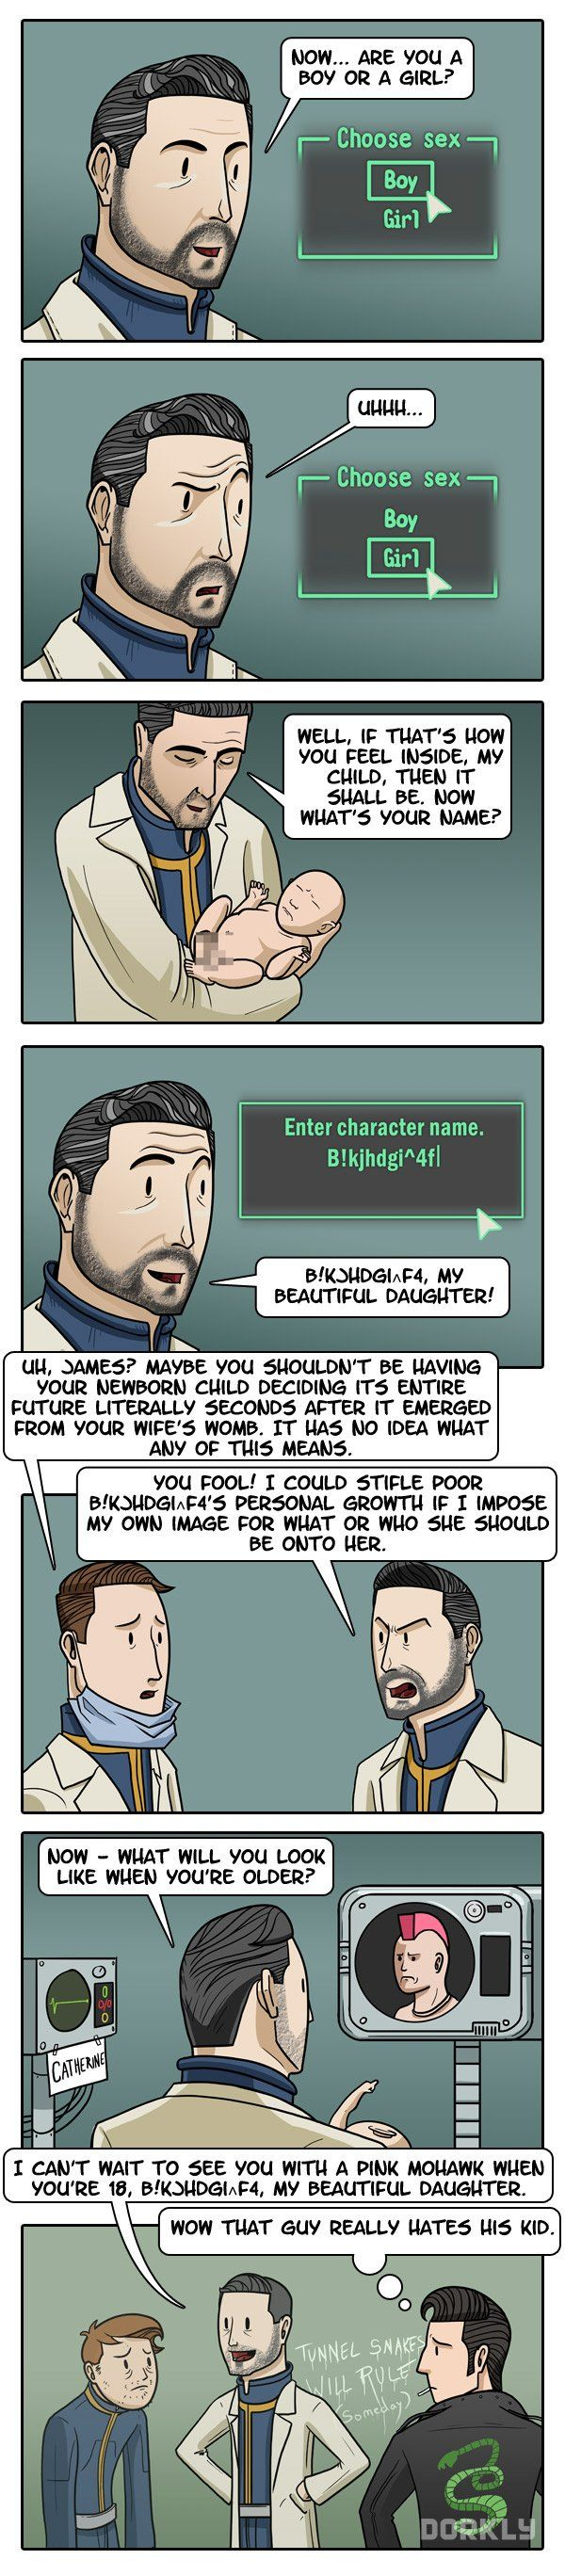 best fallout series images on pinterest